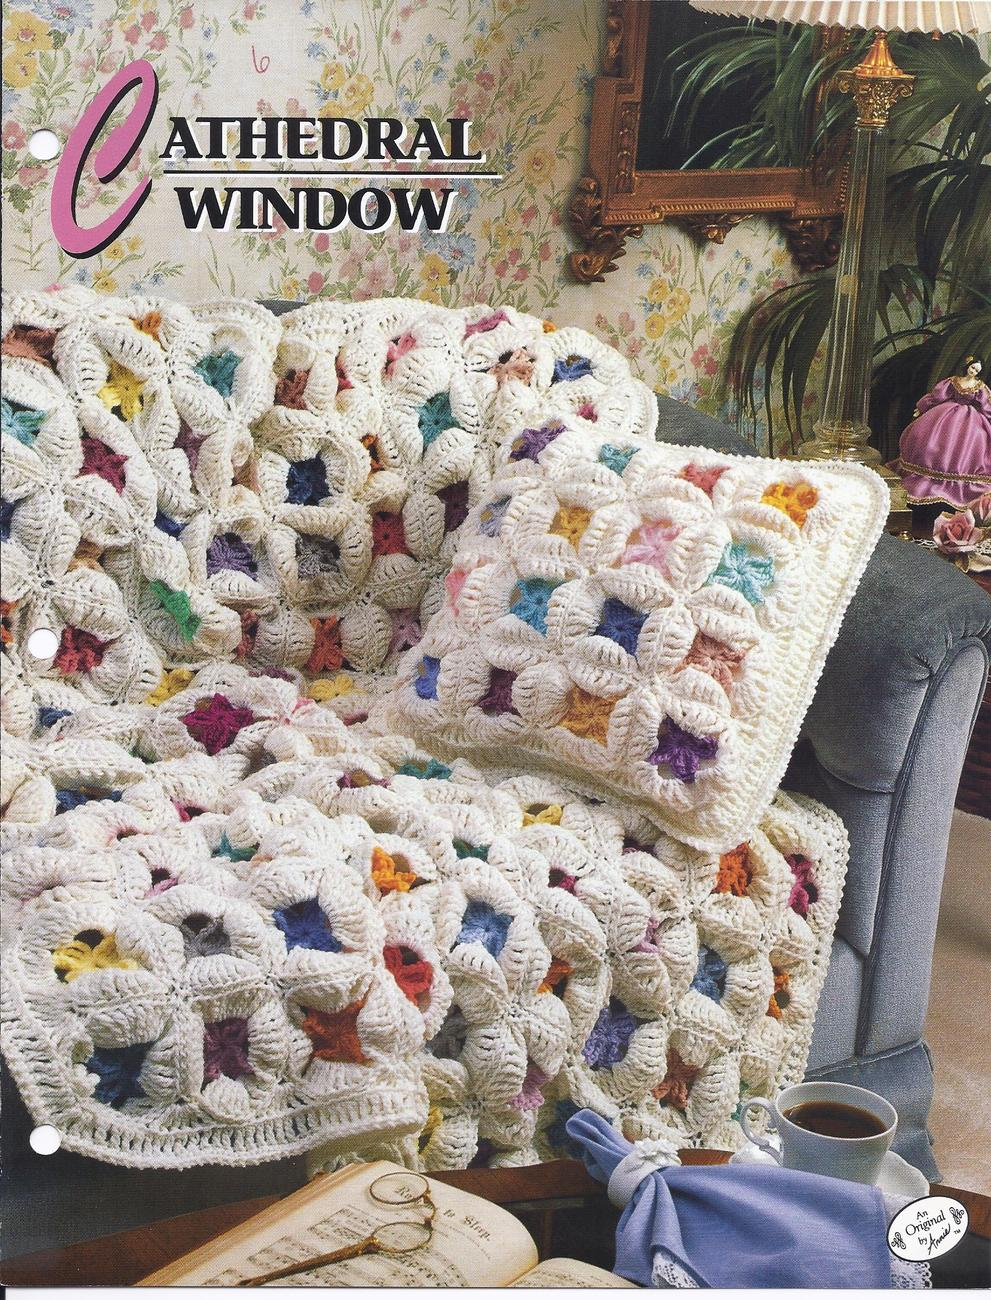 Primary image for Cathedral Window Afghan Crochet Pattern~Annie's Quilt & Afghan Club